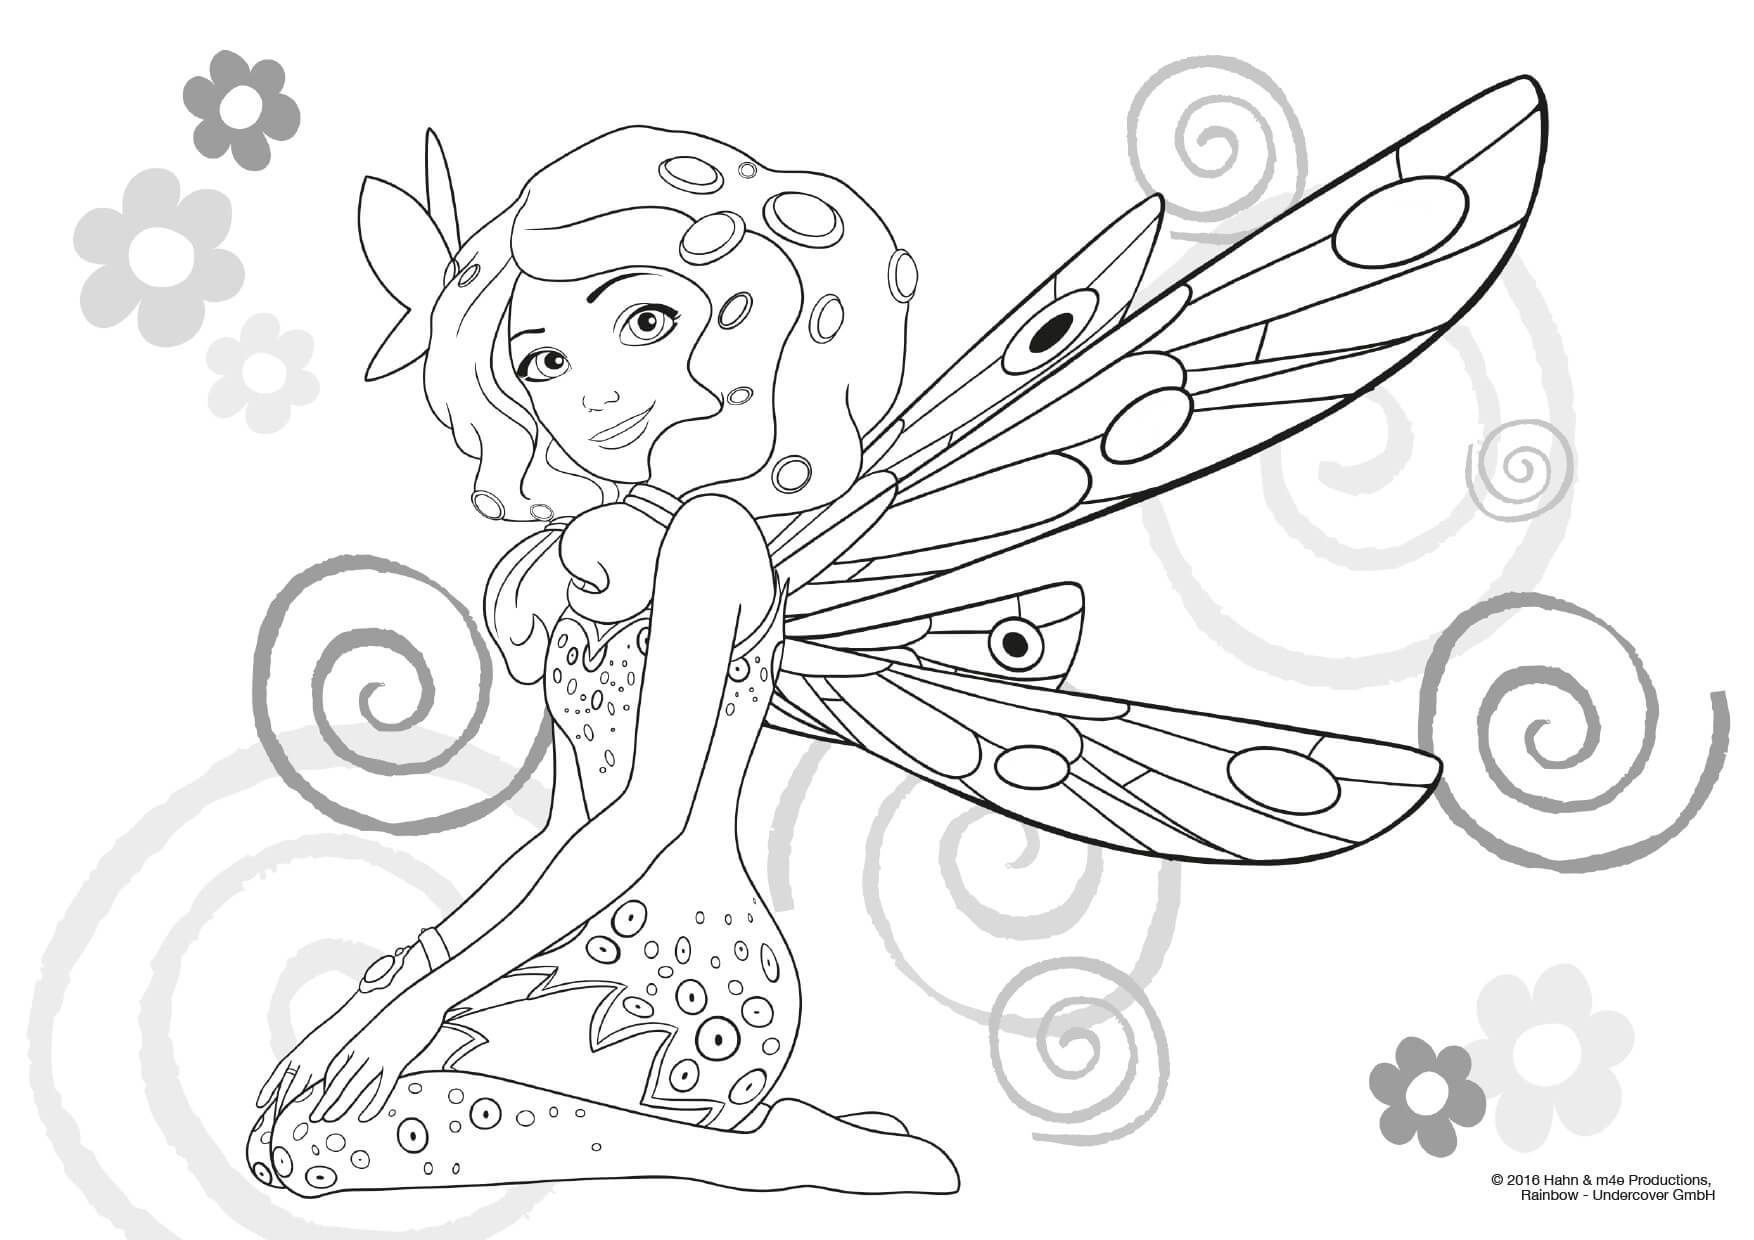 Mia And Me Ausmalbilder Ausdrucken : Pin By Marjolaine Grange On Coloriage Mia Et Moi Pinterest